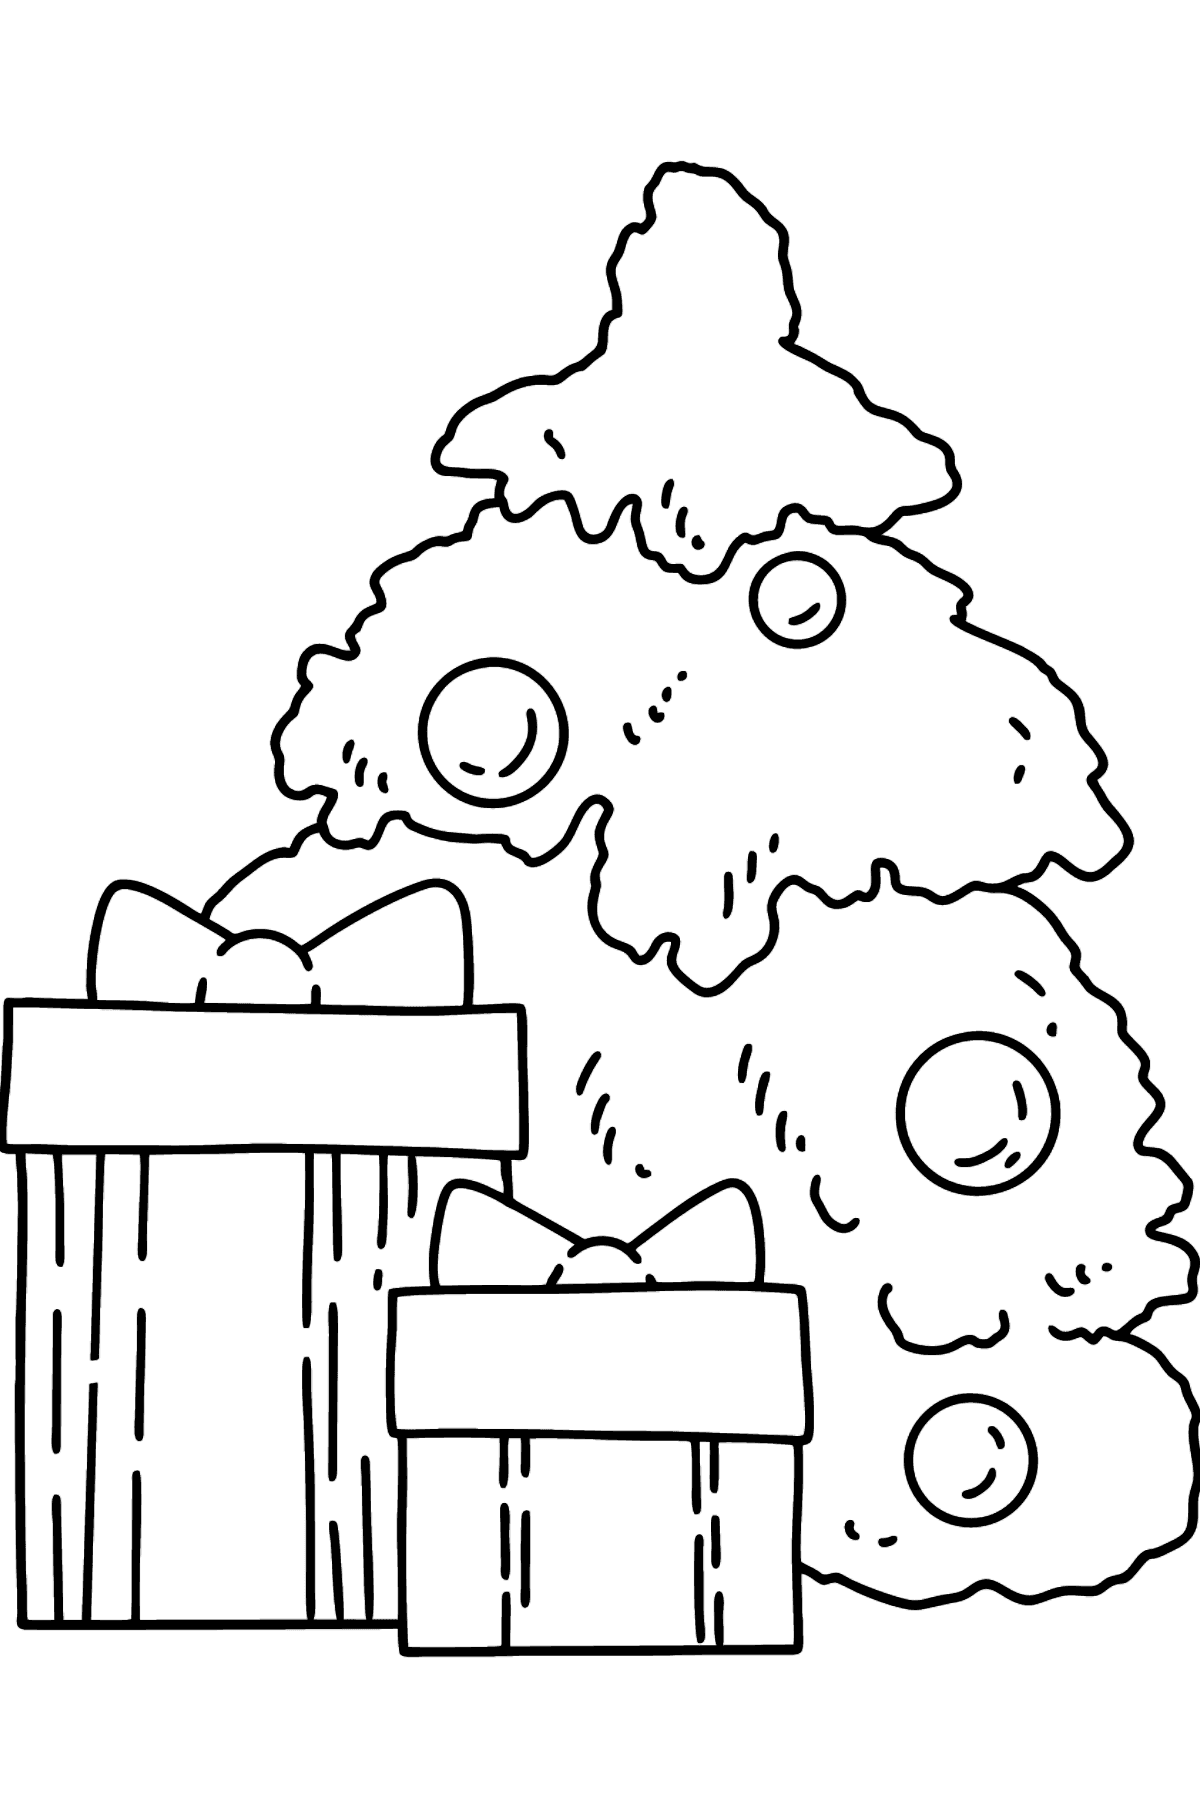 Gifts under the Christmas Tree coloring page - Coloring Pages for Kids